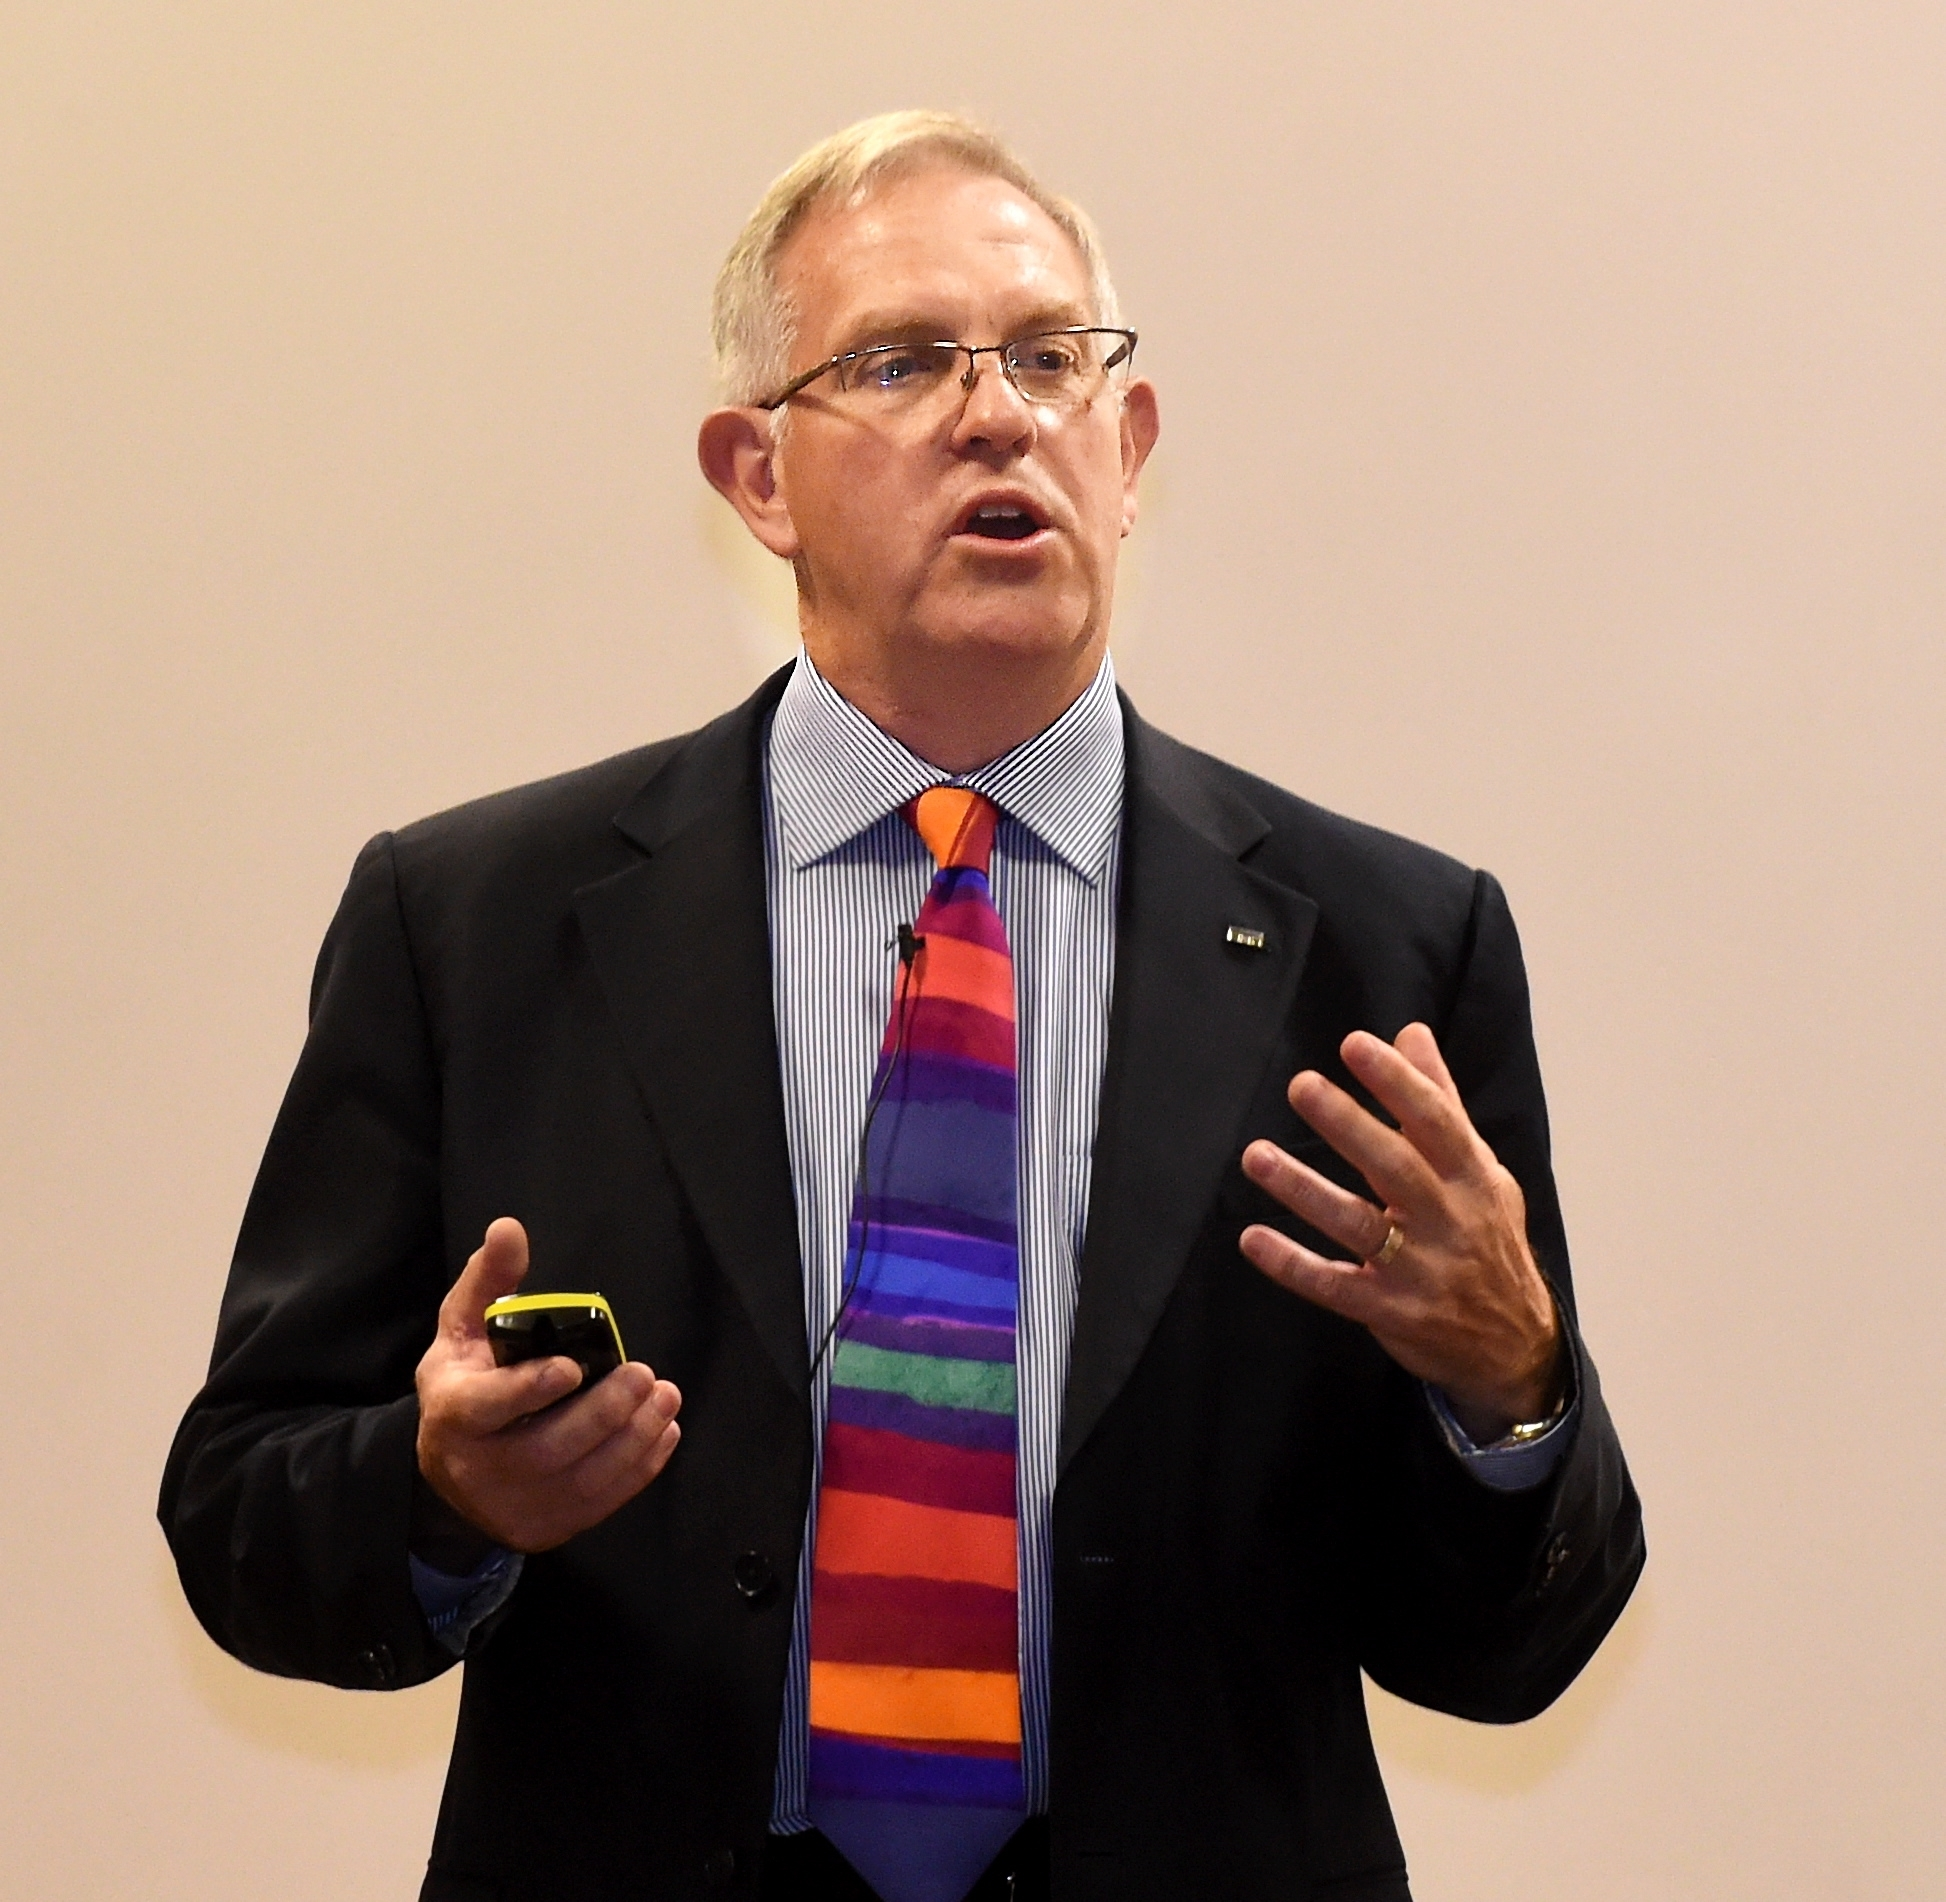 The Intelligent Energy Conference at AECC, Aberdeen. In the picture is Walt Aidred, research director, Schlumberger.